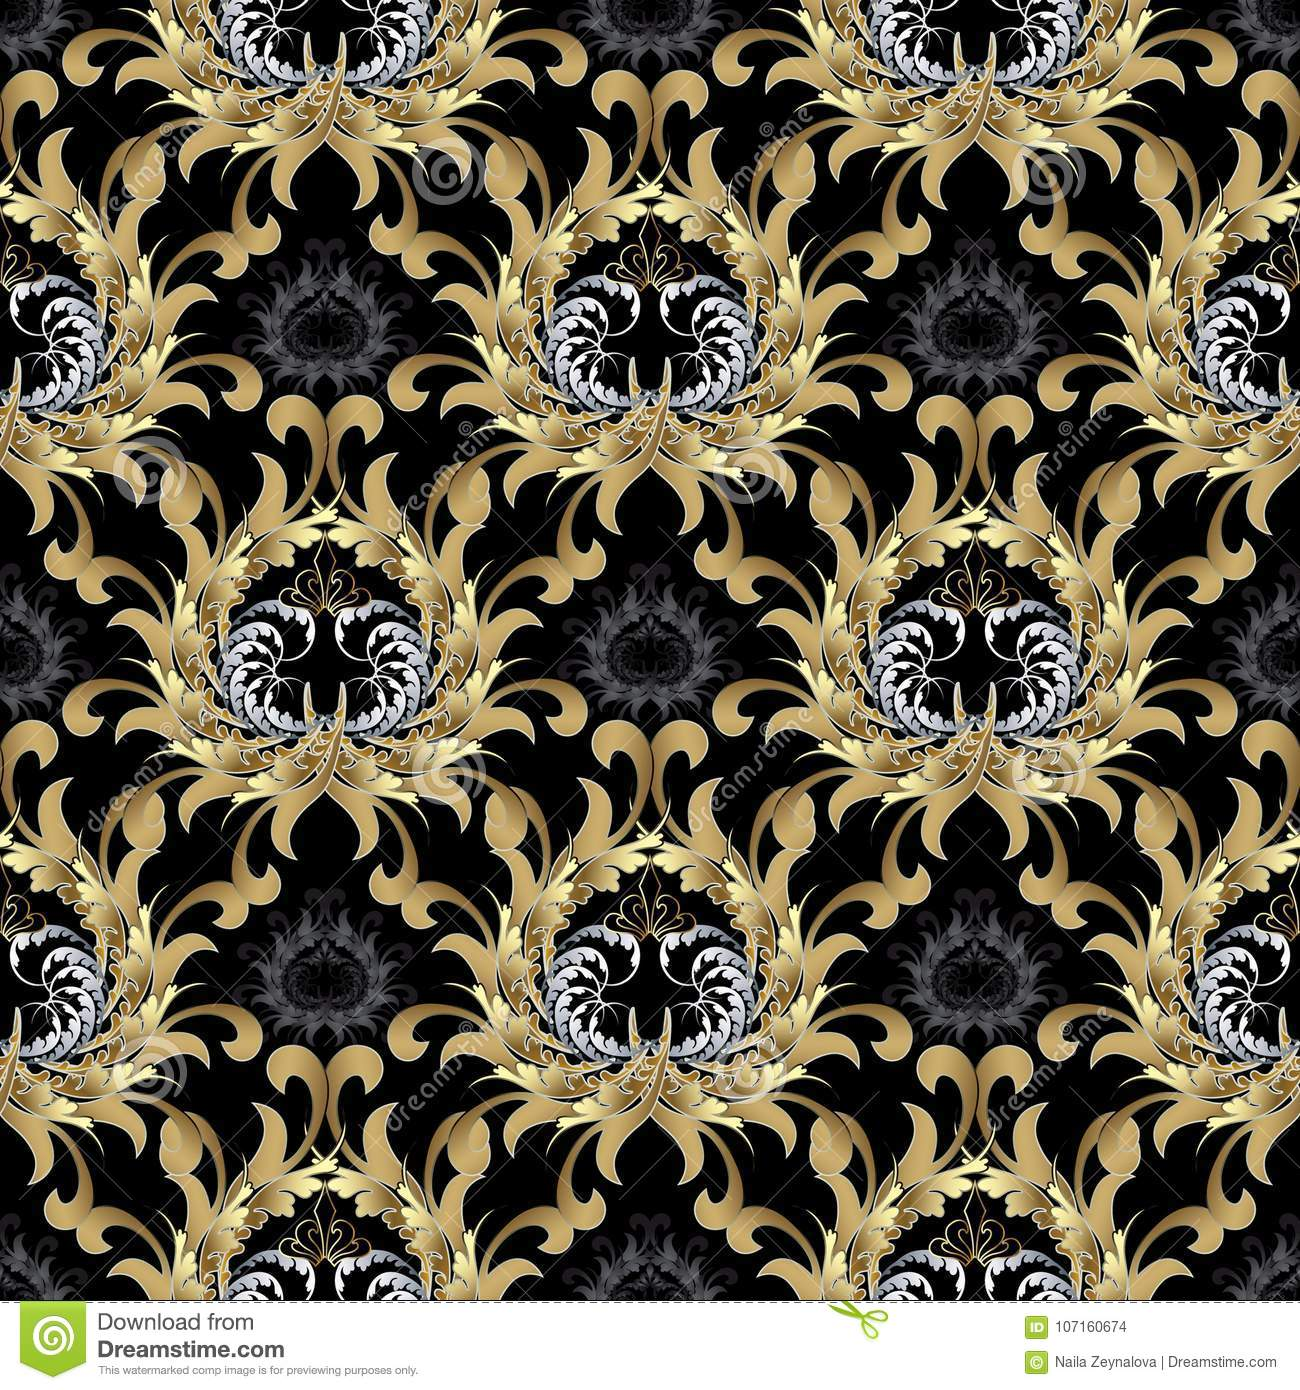 Antique Scroll Patterns: Baroque Seamless Pattern. Gold Baroque Wallpaper. Floral